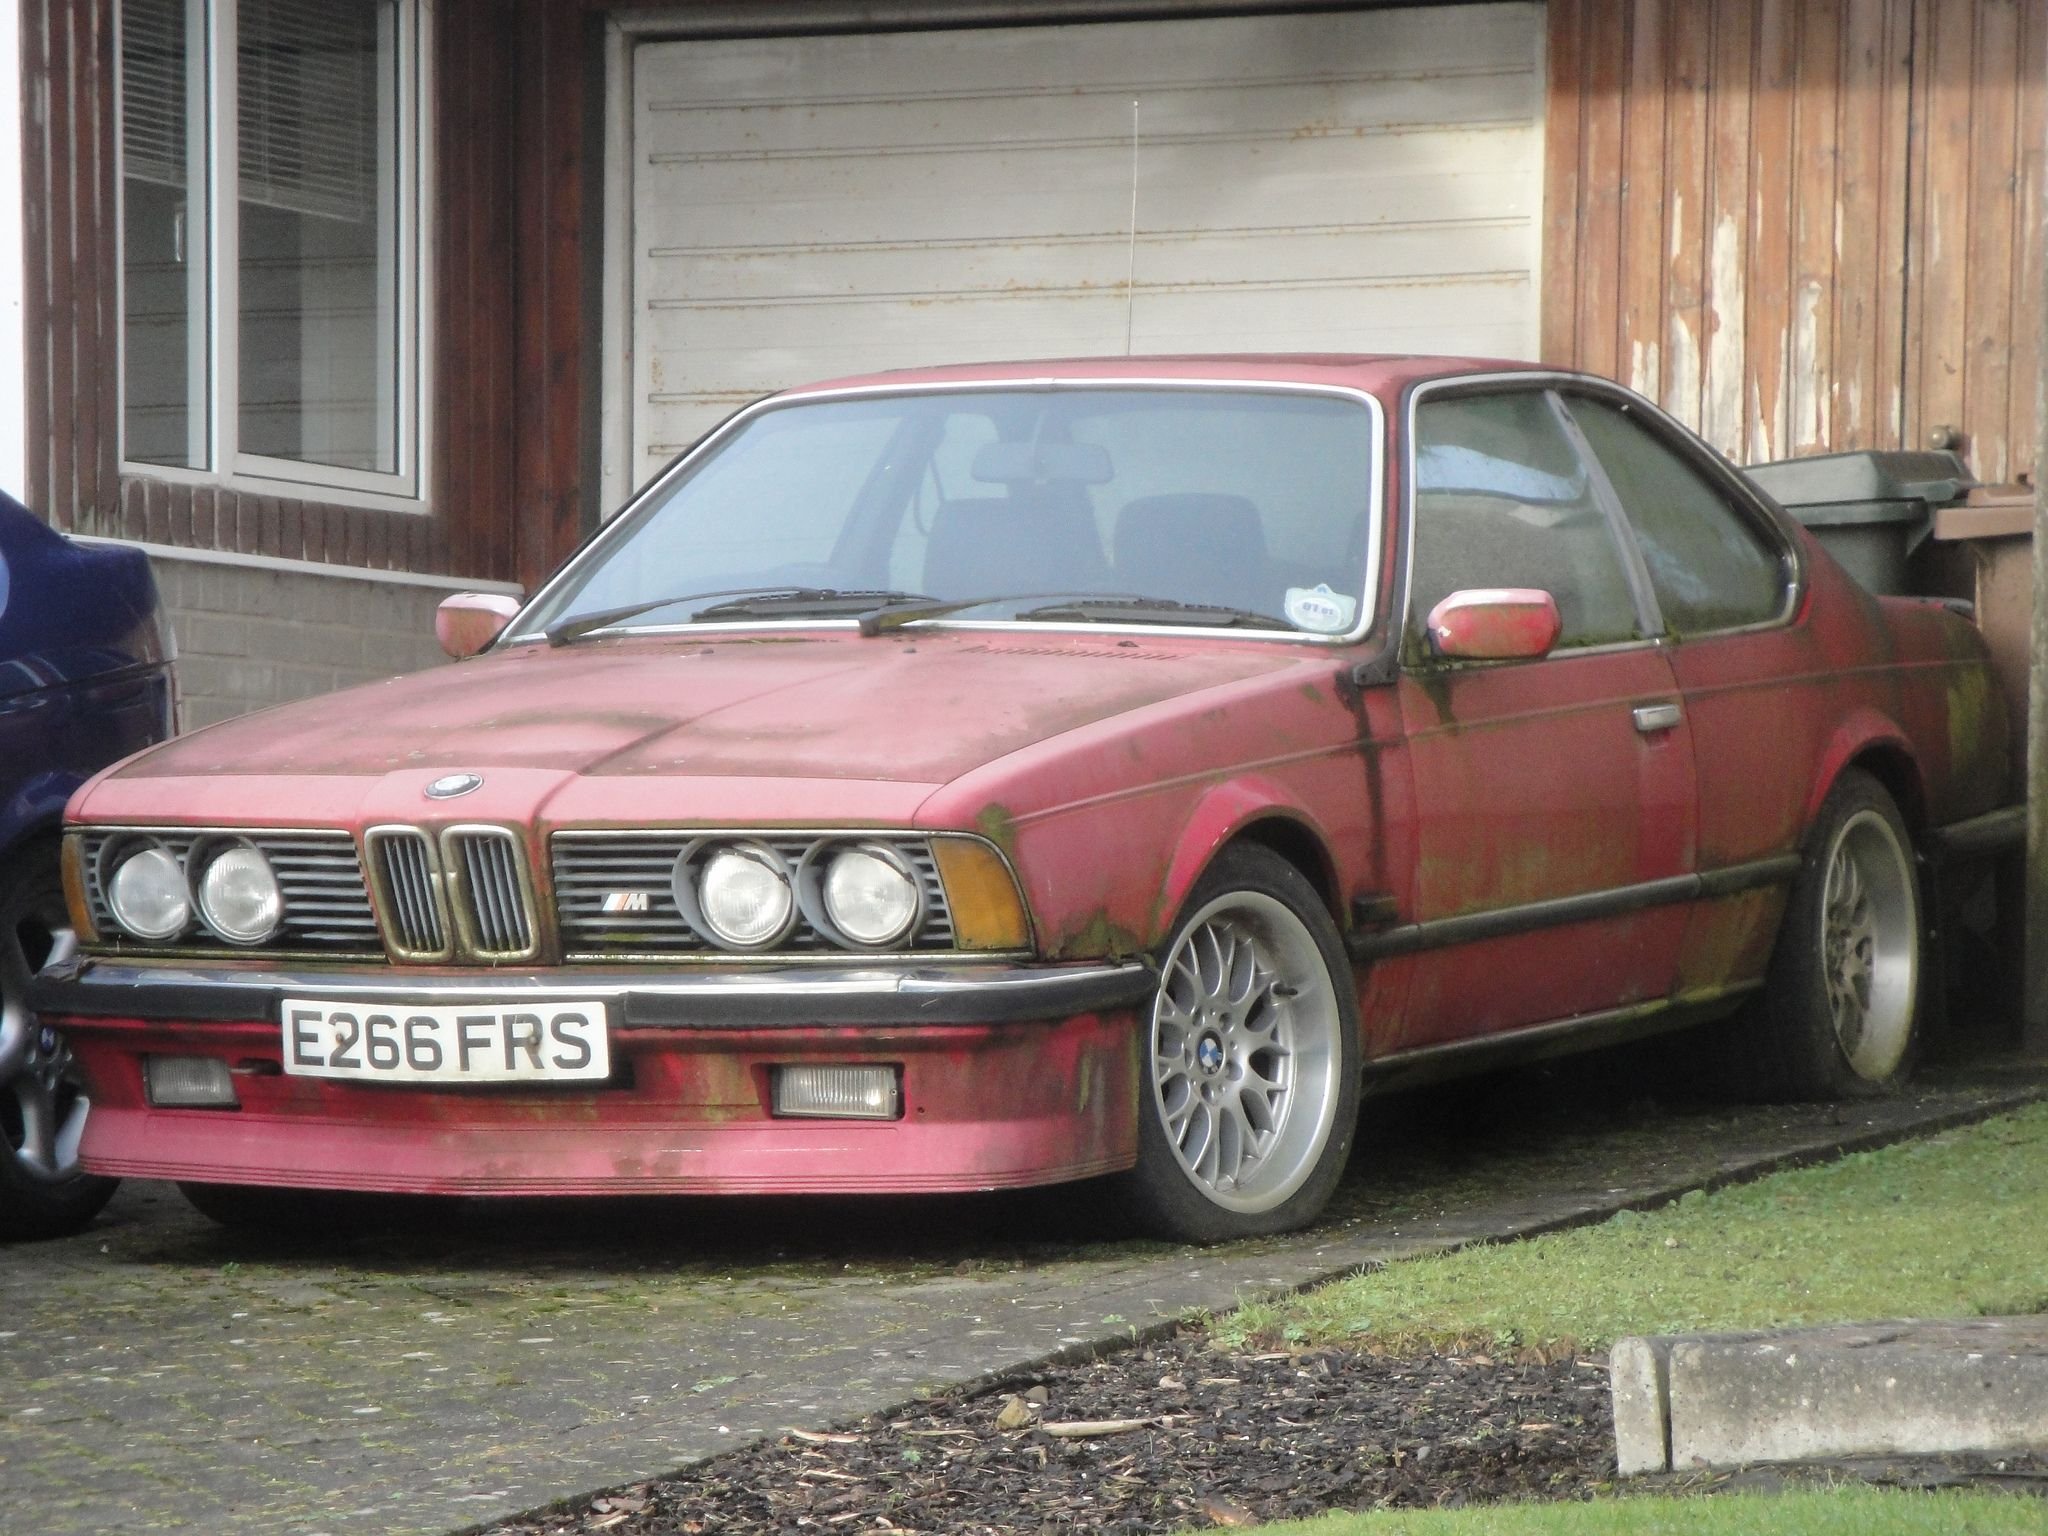 bmw m635 csi abandoned chef d oeuvre en peril. Black Bedroom Furniture Sets. Home Design Ideas